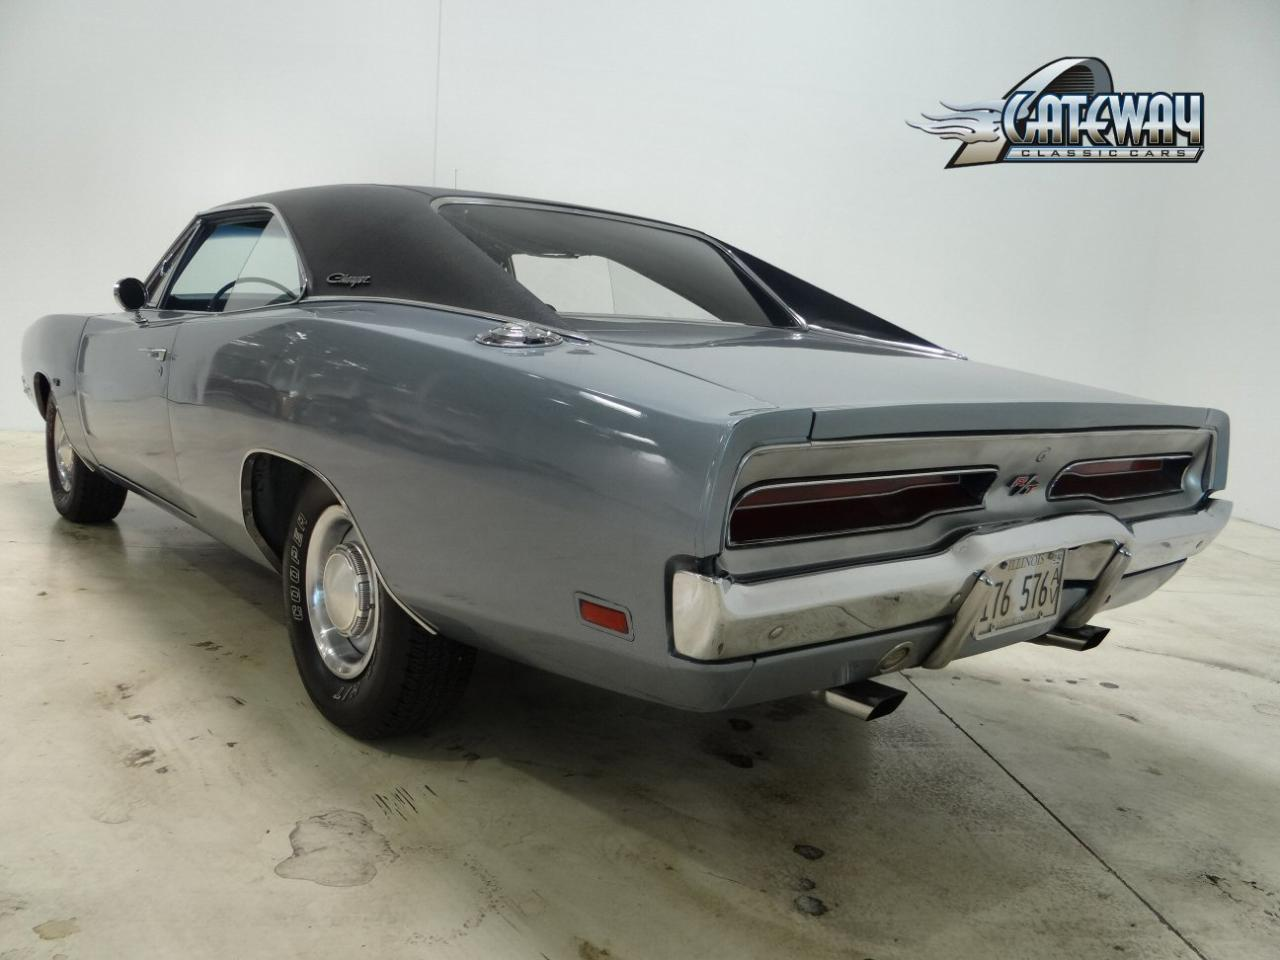 1969 Dodge Charger Rt For Sale Cheap 2018 Dodge Reviews